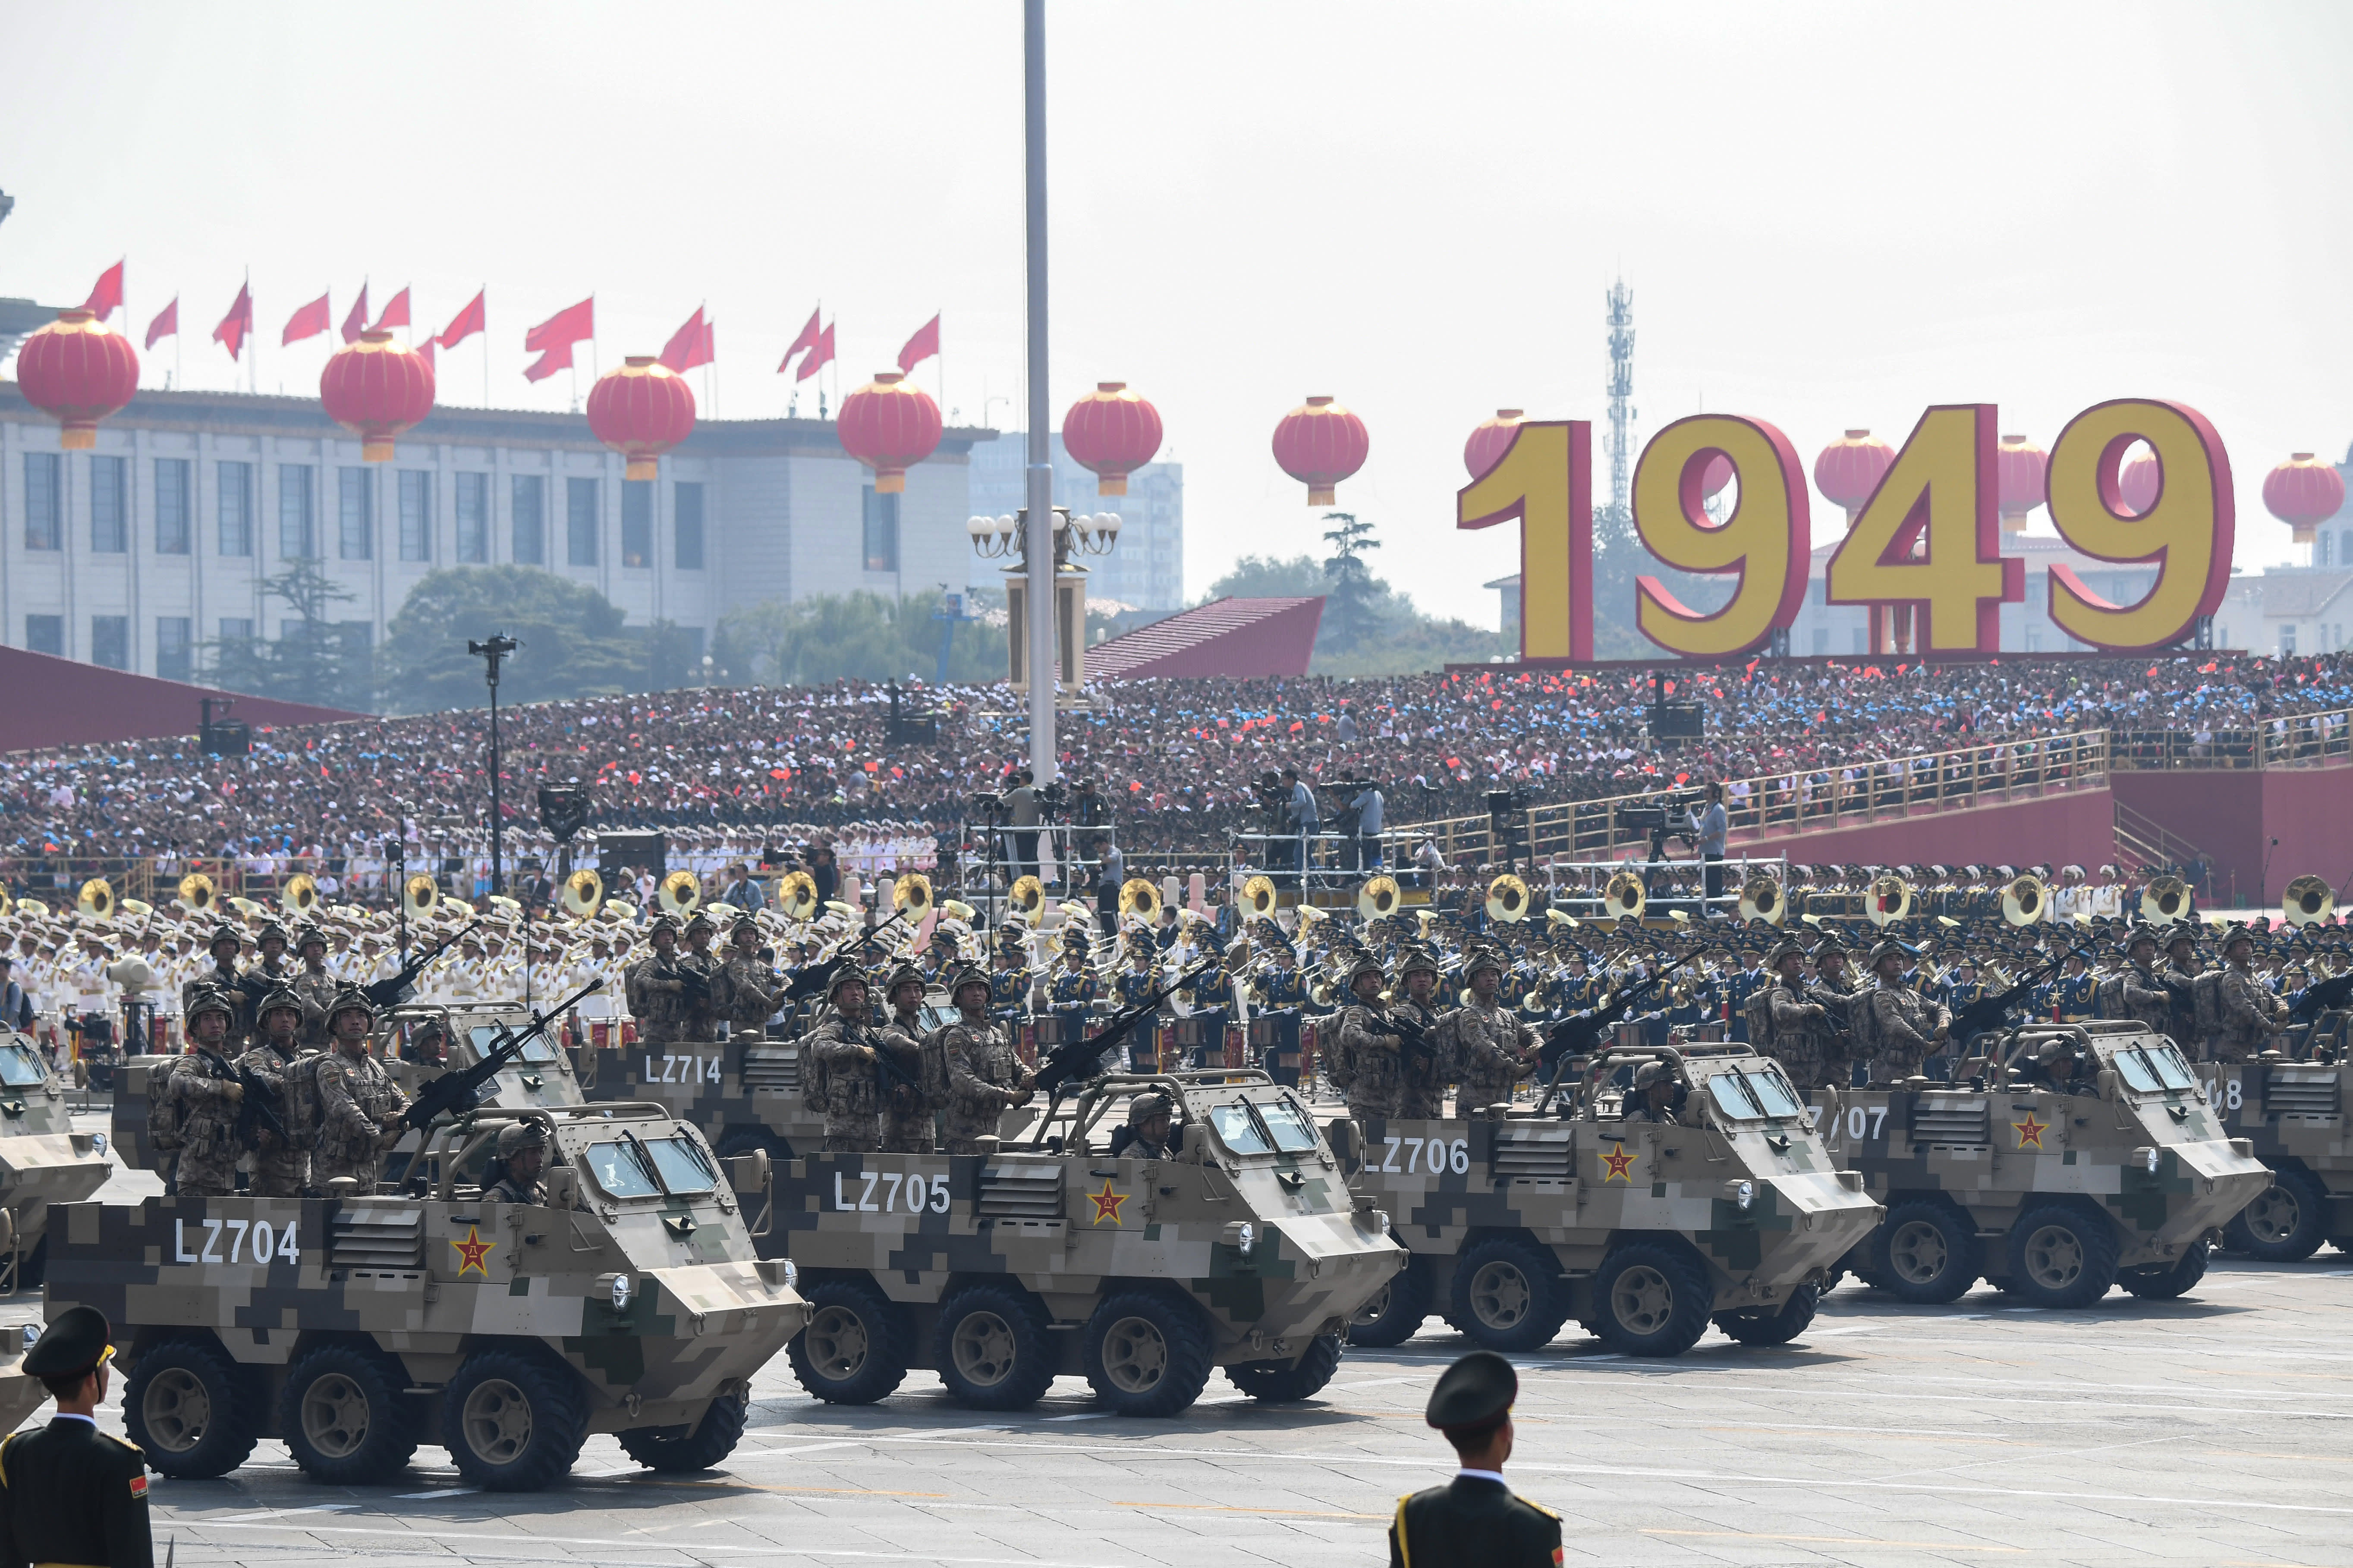 Amid economic challenges, China displays 'a military show of strength' at its 70th birthday bash